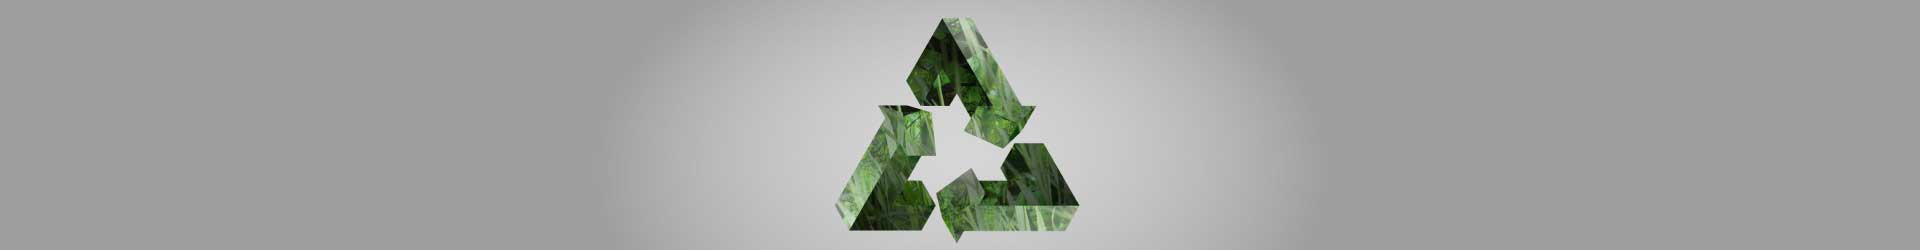 eWaste management and recycling